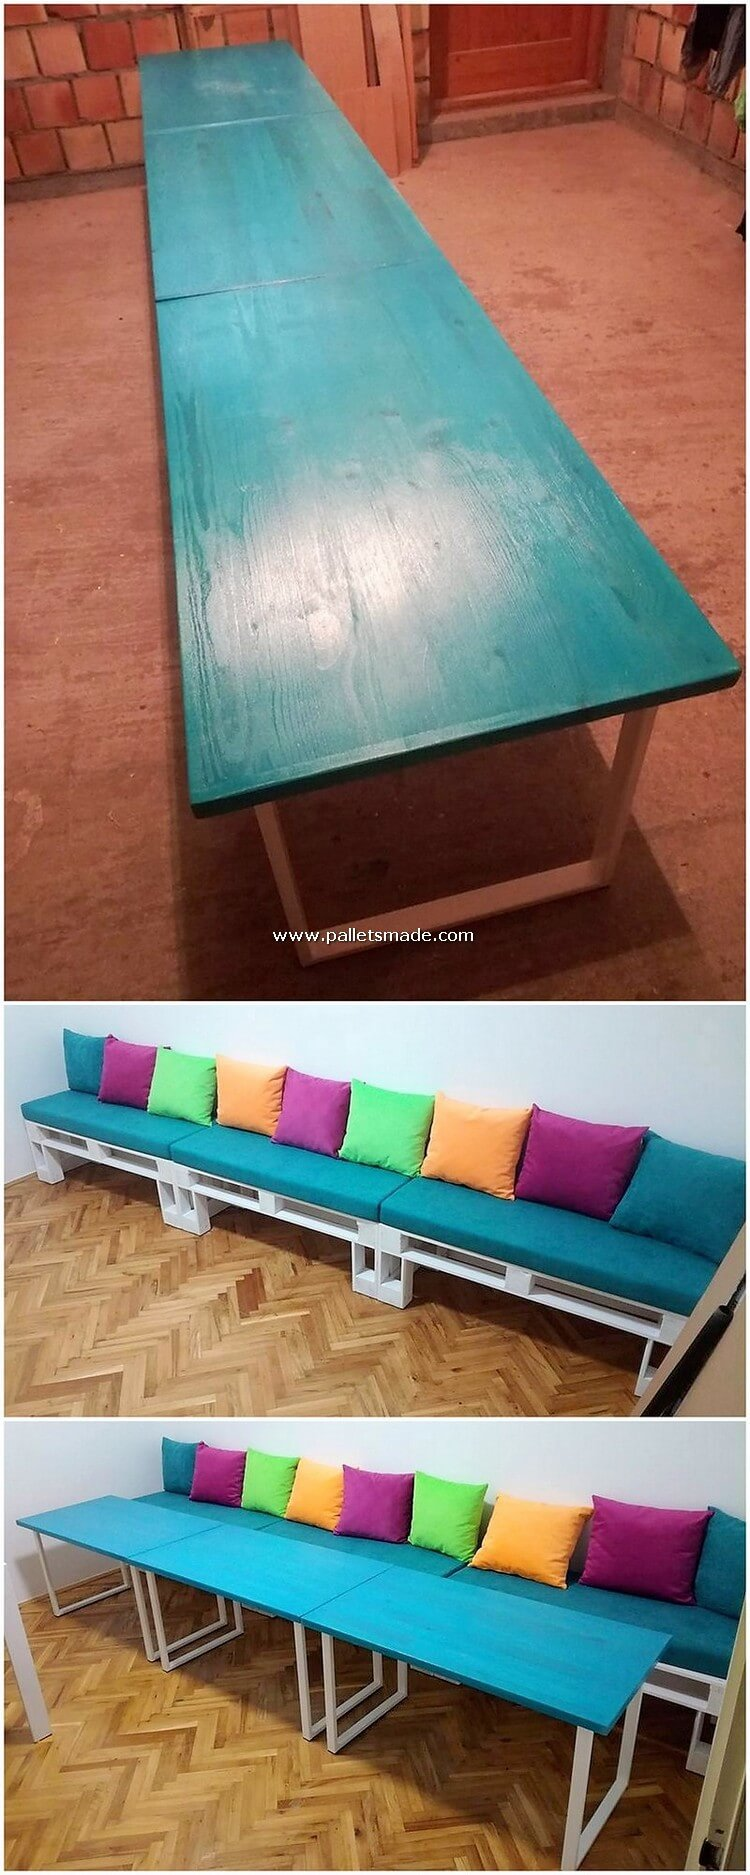 Pallet Table and Sofa